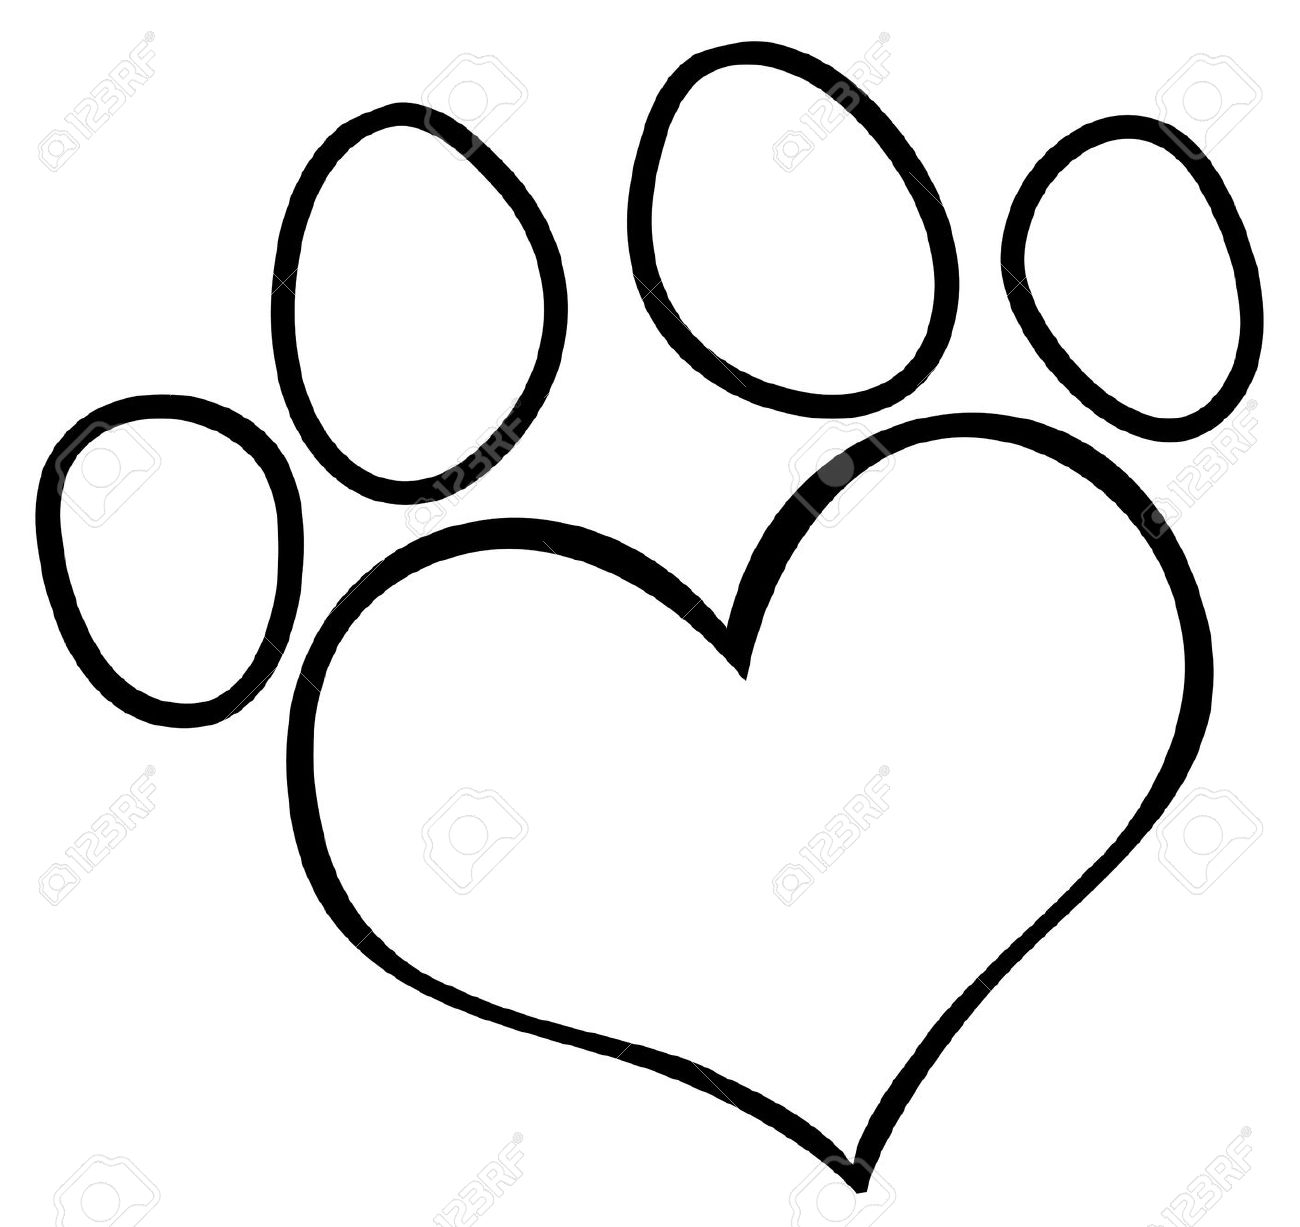 Paw print outline clipart.